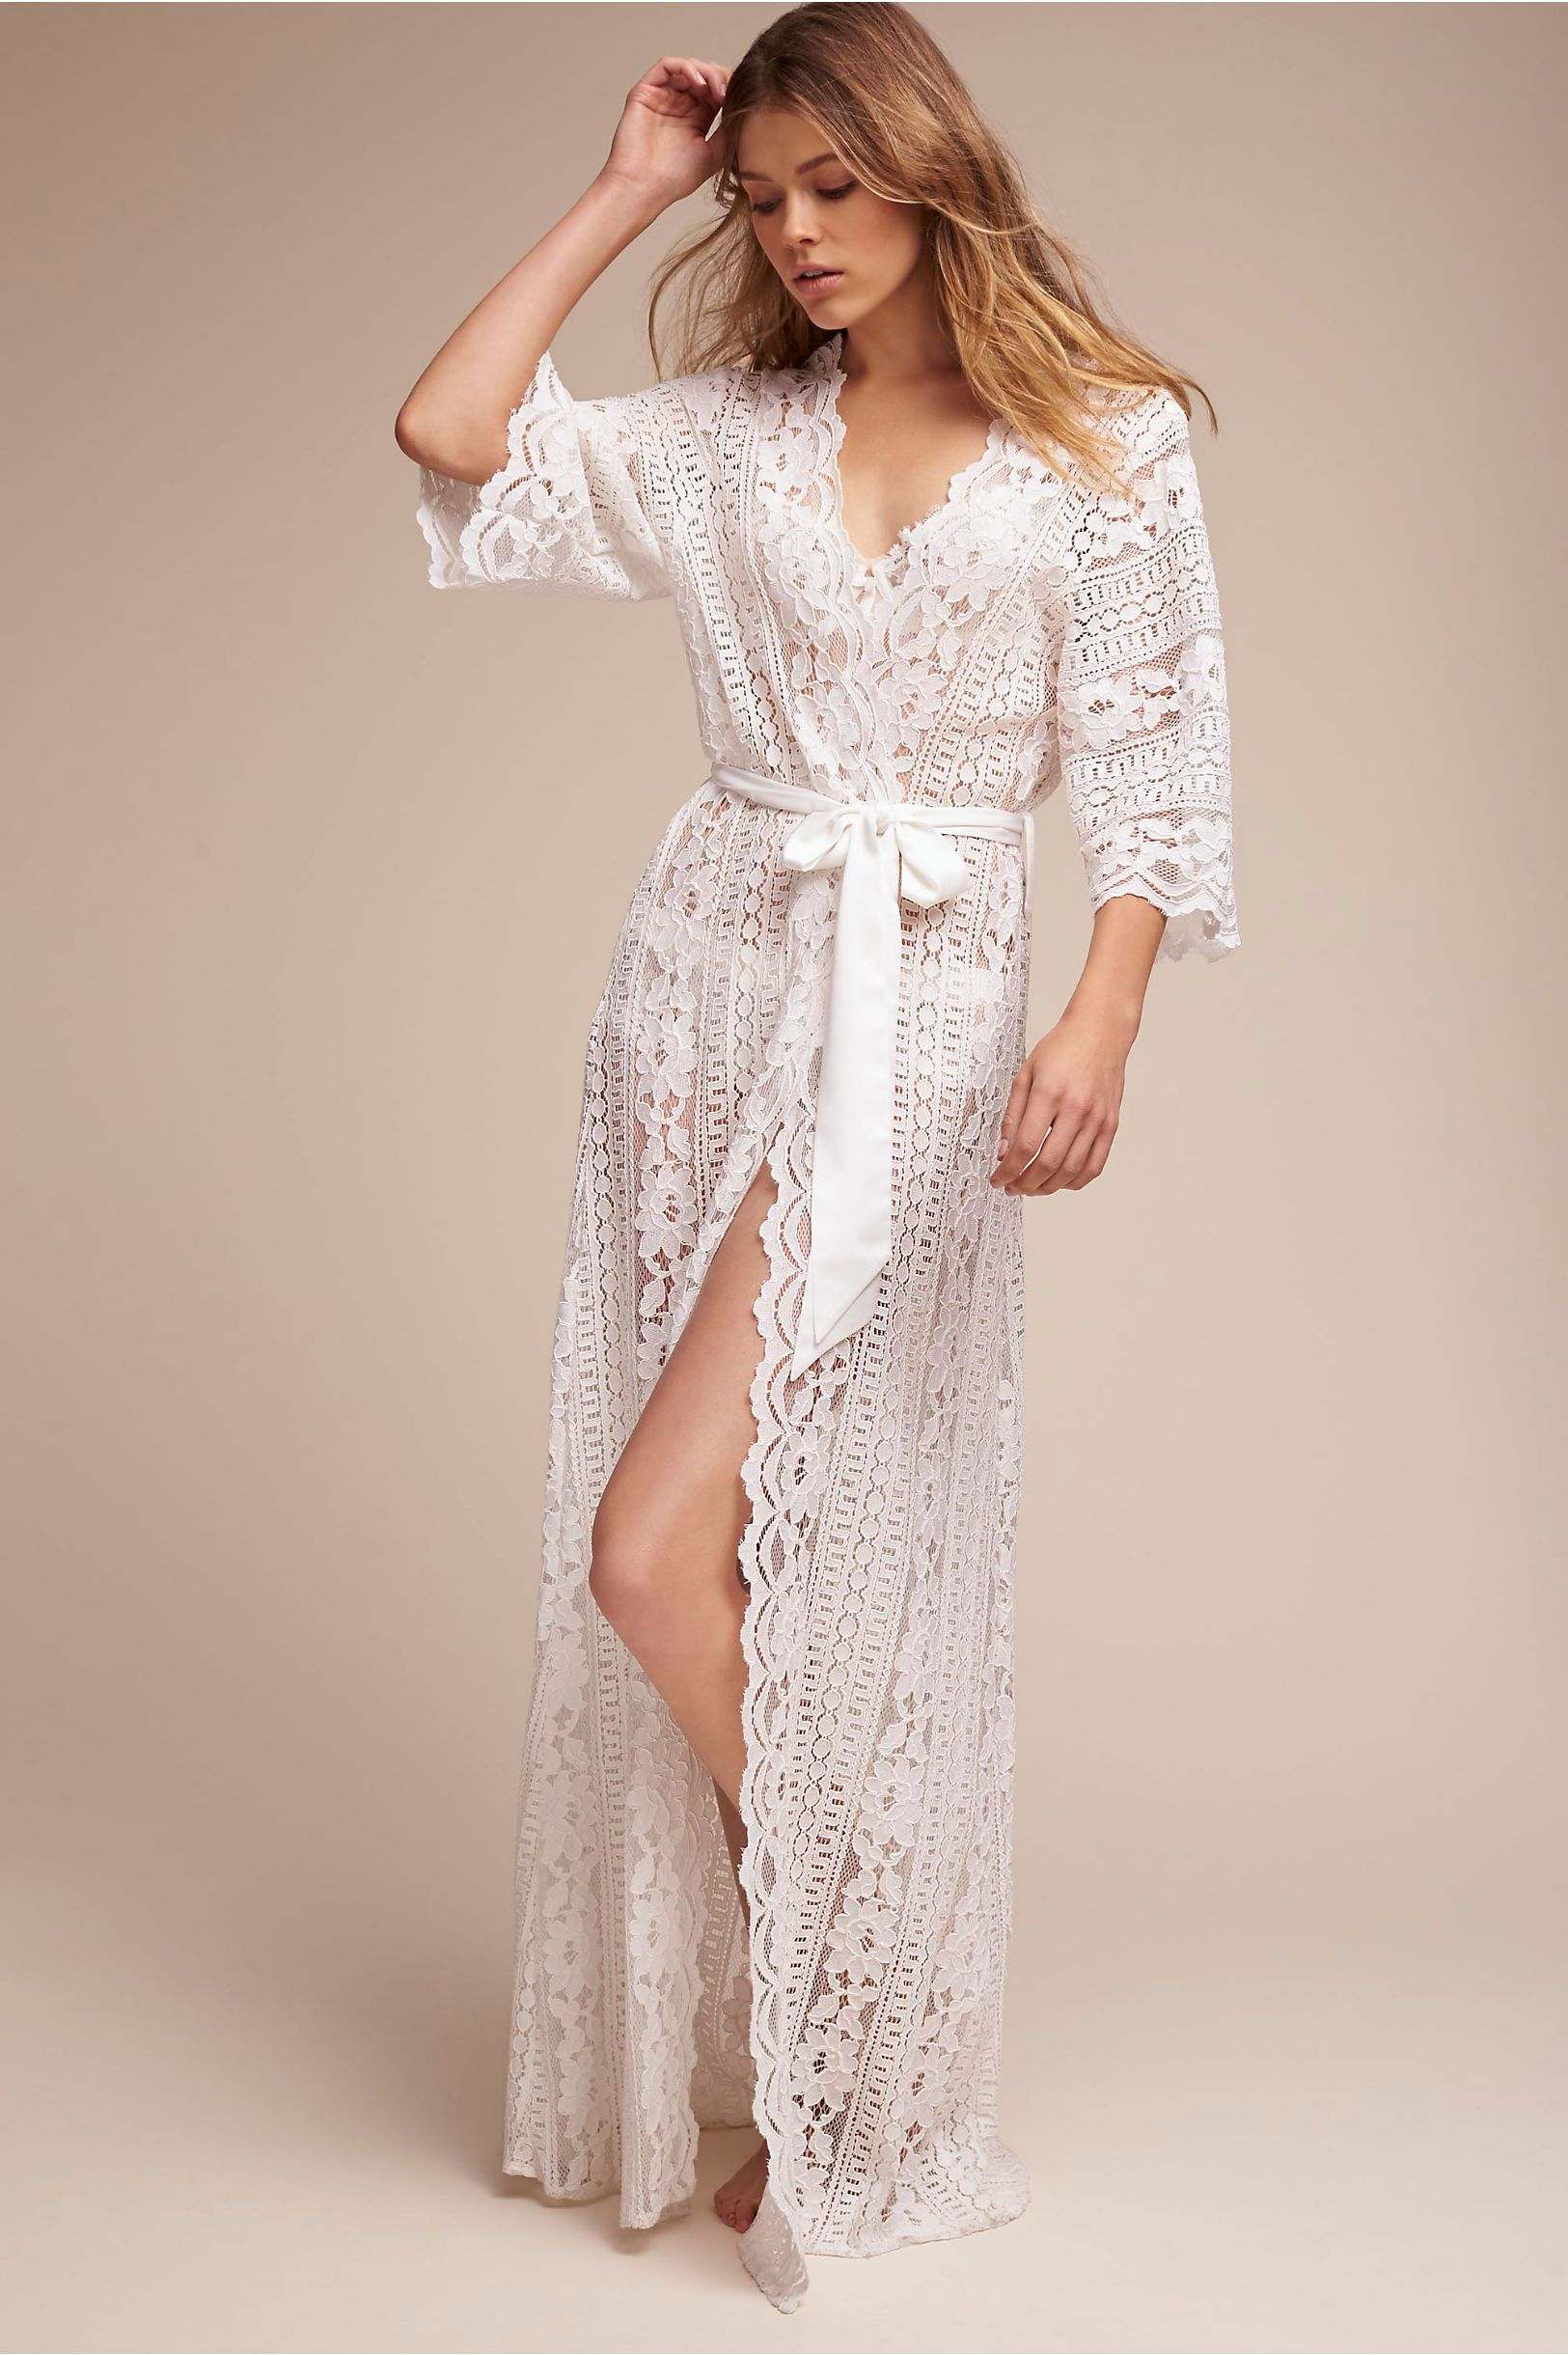 def770bb8 BHLDN s Homebodii Willow Lace Robe in Ivory